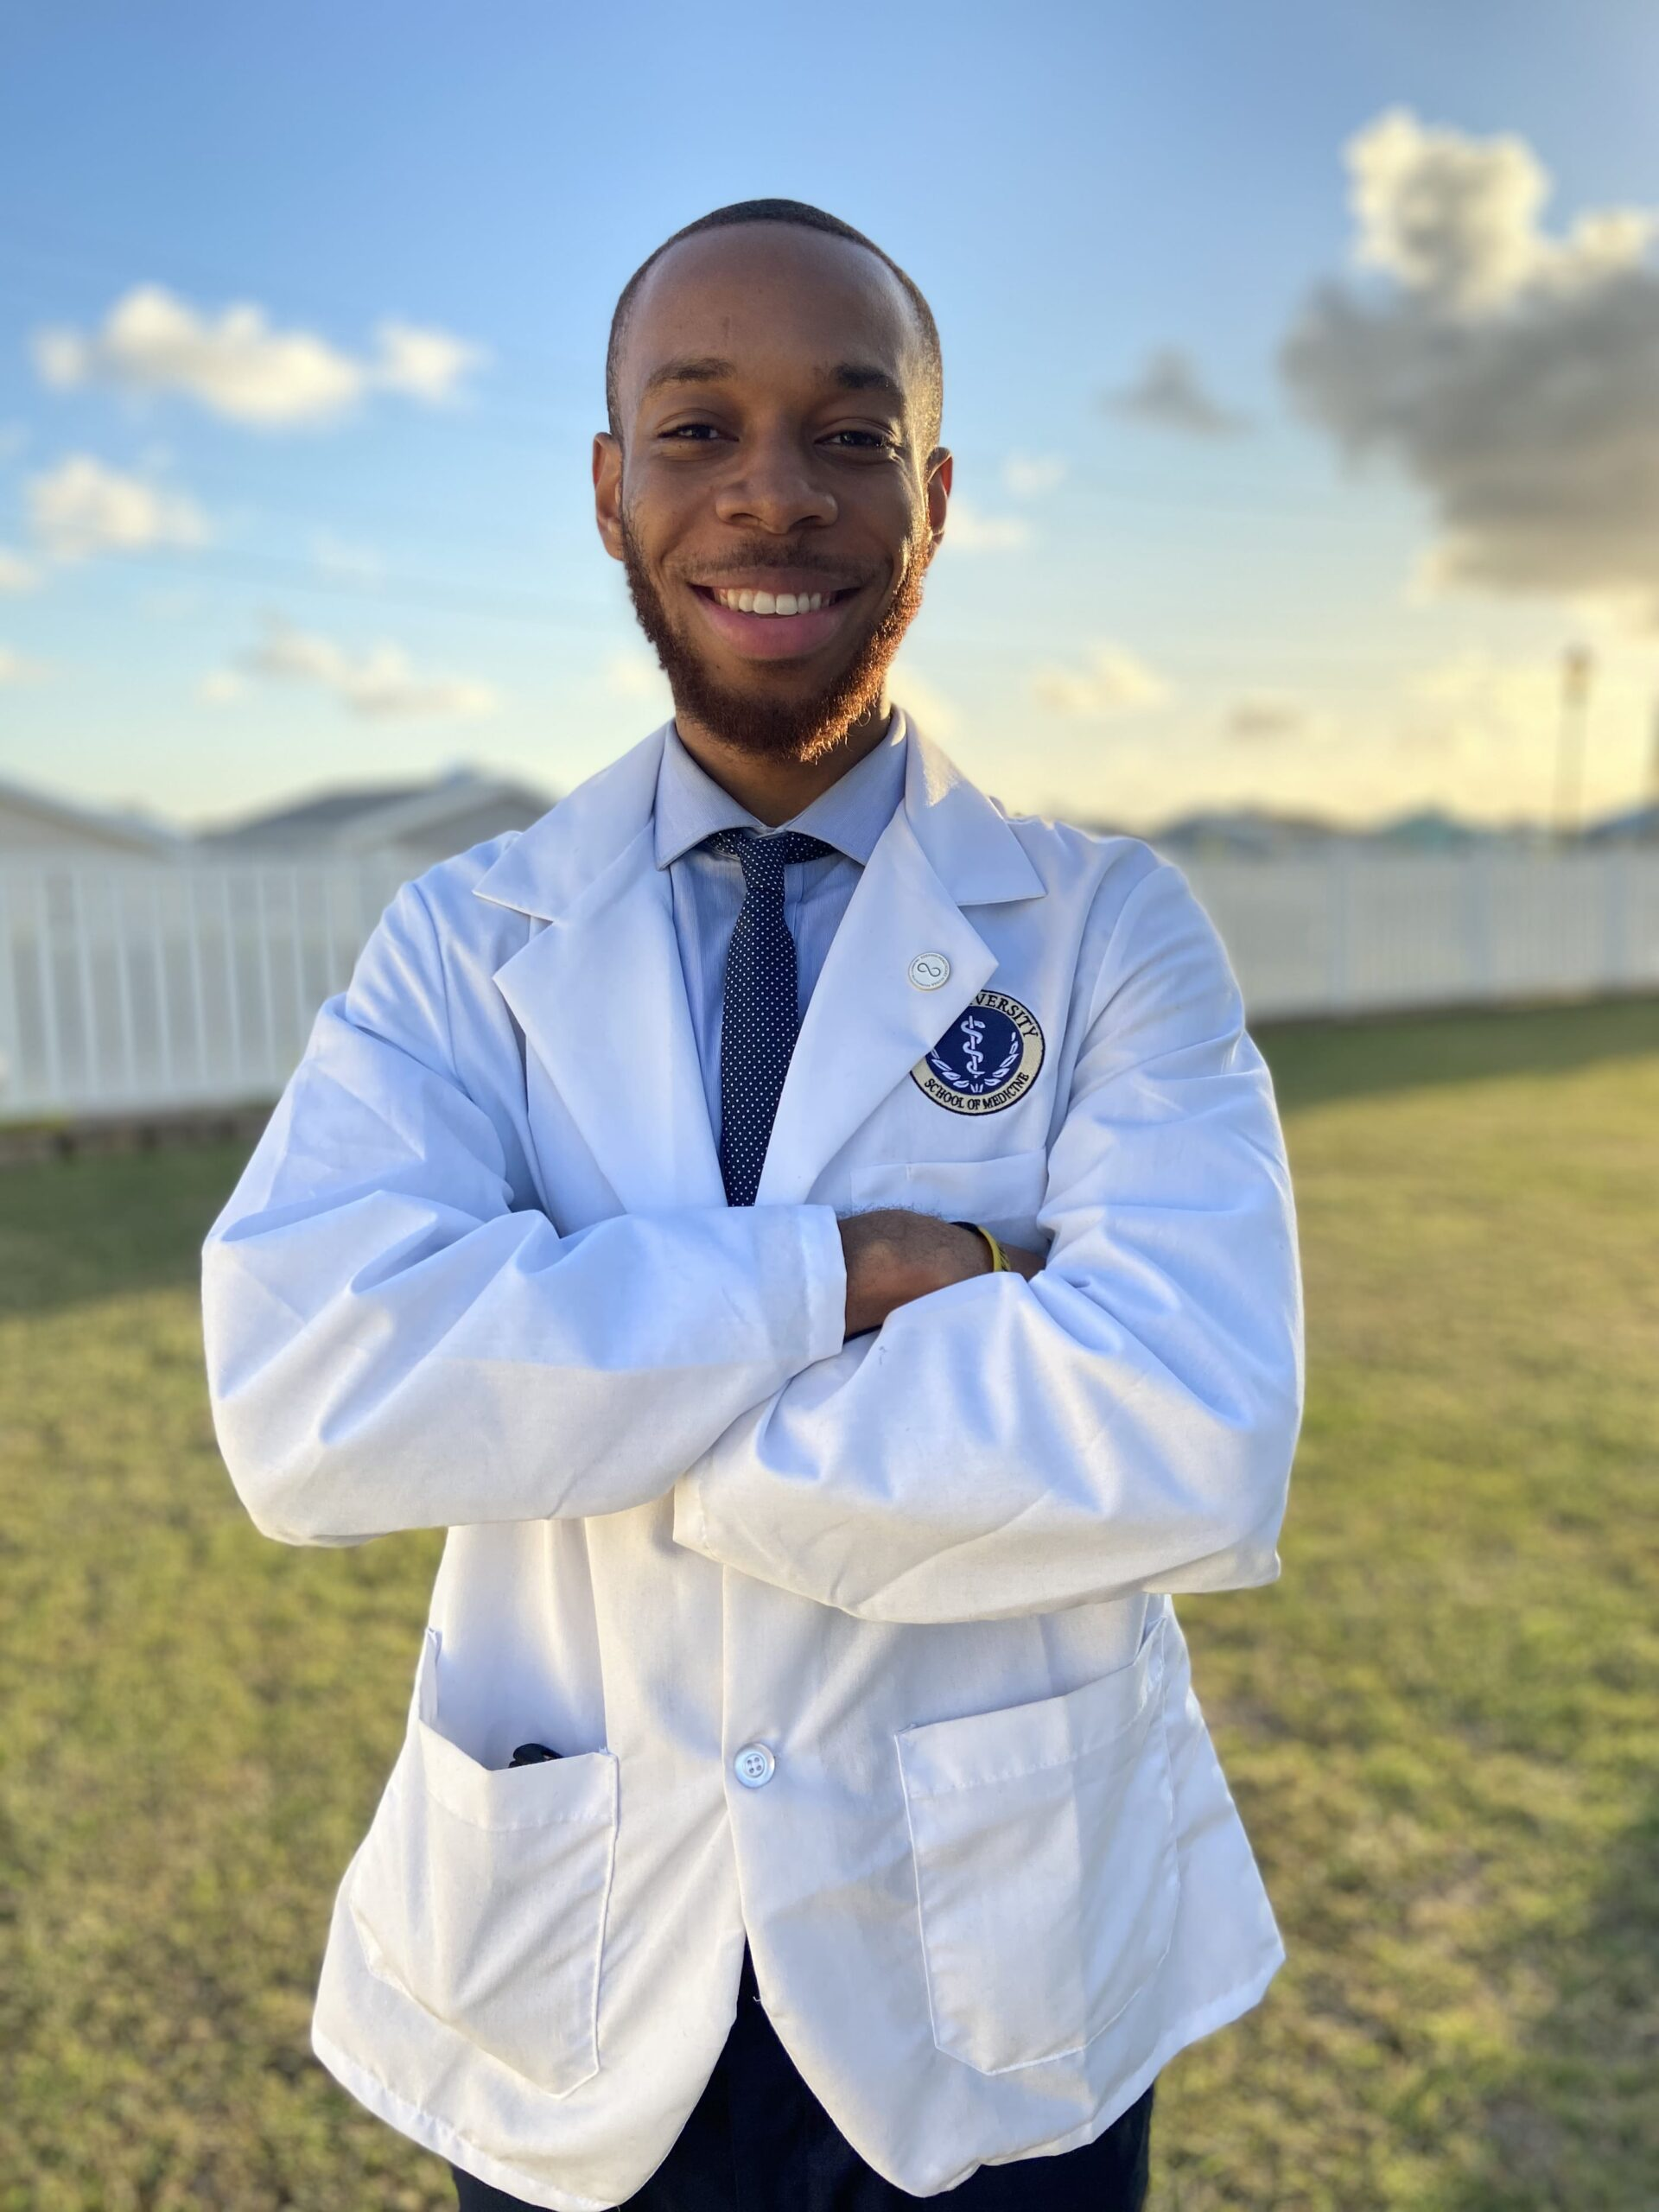 Ifeanyichukwu Ozobu Aims to Educate Black Youth to Inspire Their Path into Medicine